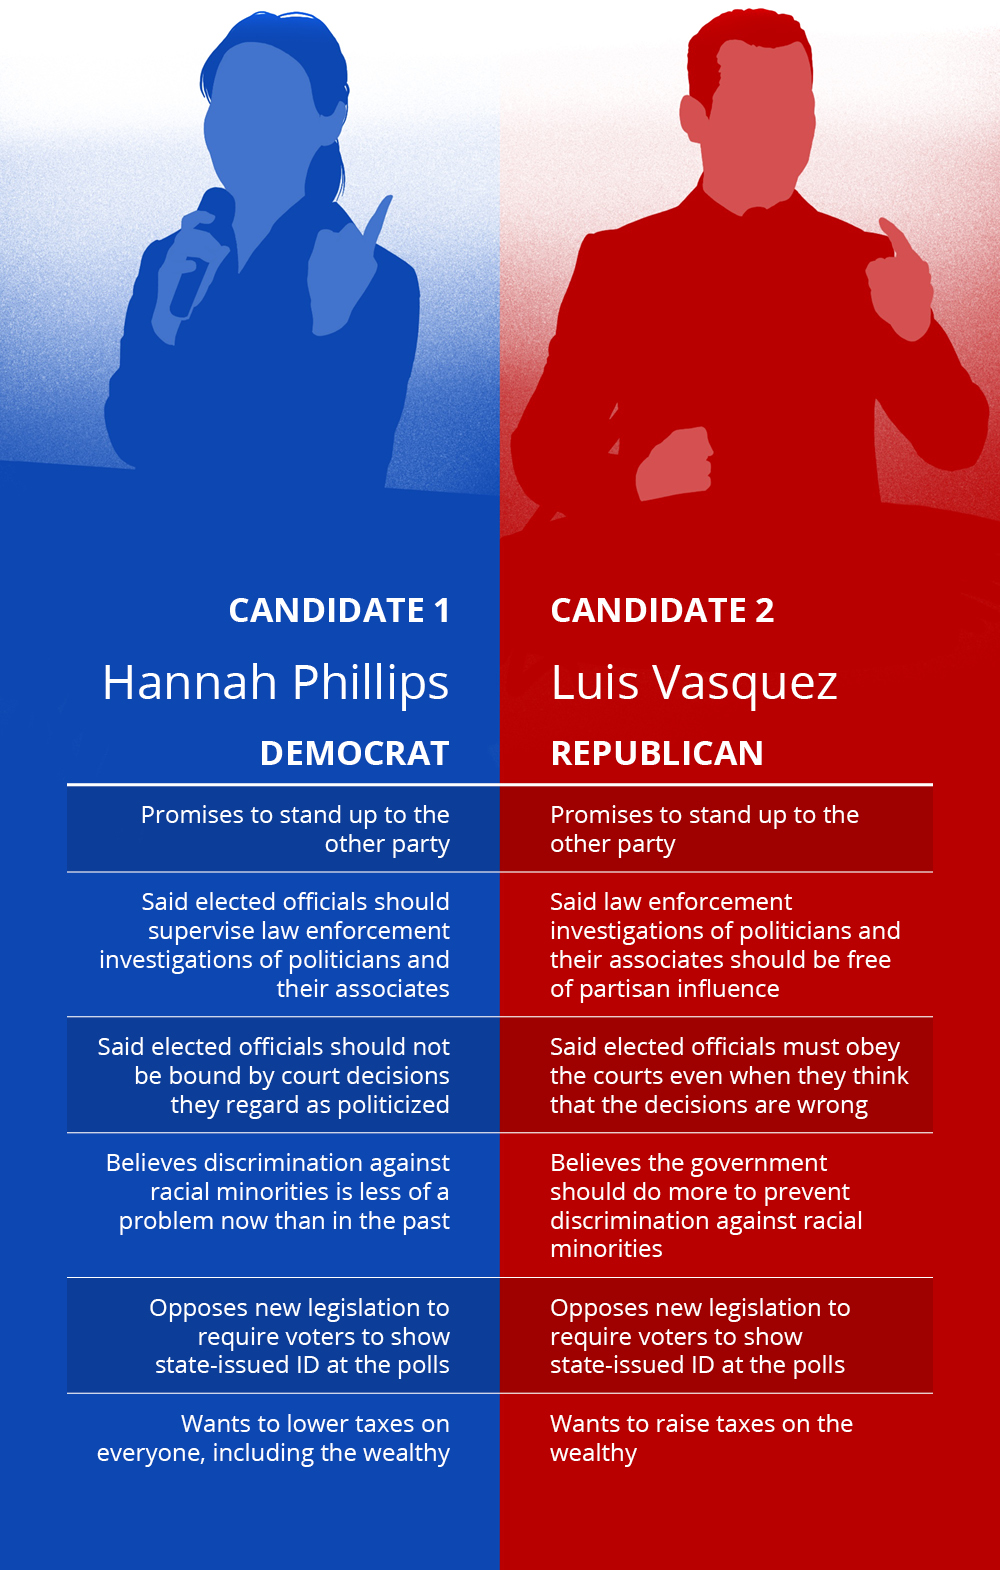 illustration of two fictional candidates; The blue democrat is named Hannah Phillips and has the following characteristics: Promises to stand up to the other party, said elected officials should supervise law enforcement investigations of politicians and their associates, said elected officials should not be bound by court decisions they regard as politicized, believes racial discrimination is less of a problem now than in the past, opposed new legislation to require voters to show state-issued ID at the polls, Wants to lower taxes on everyone including the wealthy. The second candidate, in red, is a Republican named Luis Vasquez and he has the following characteristics: Promises to stand up to the other party, said law enforcement investigations of politicians and their associates should be free of partisan influence, Said elected officials must obey the courts even when they think that the decisions are wrong, Believes the government should to more to prevent discrimination against racial minorities, Opposed new legislation to require voters to show state-issued ID at the polls; Wants to raise taxes on the wealthy.